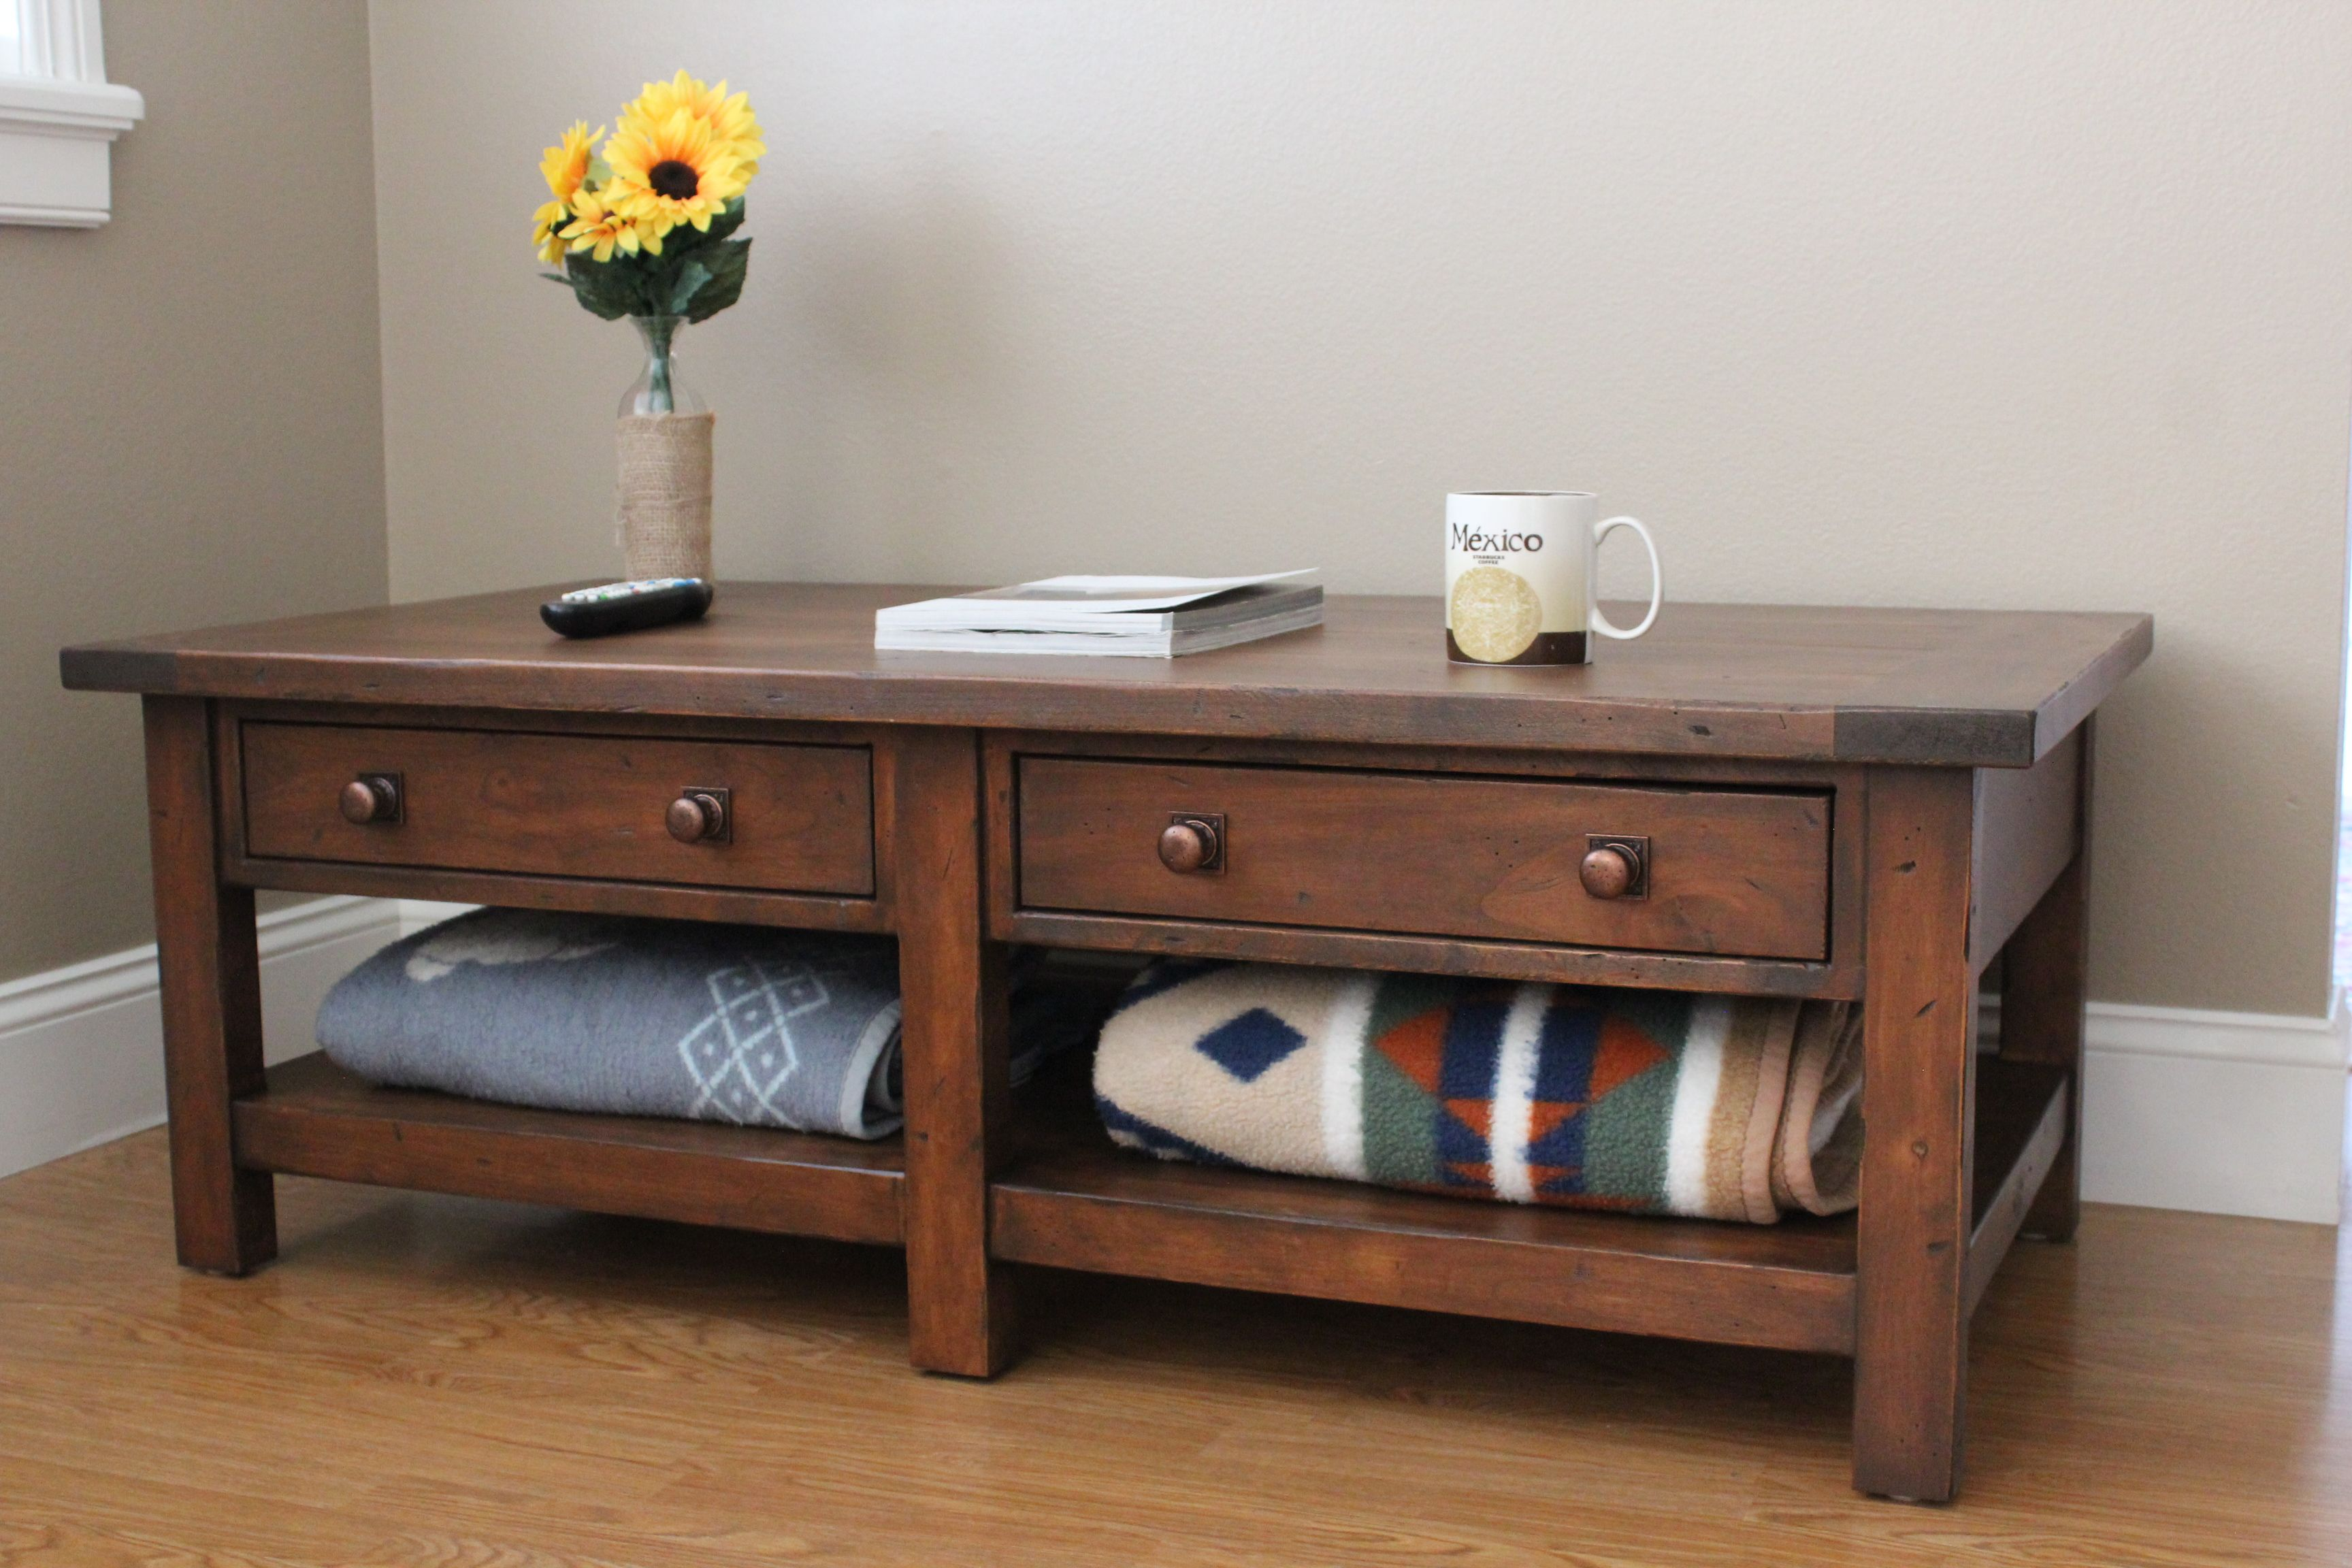 Benchwright Coffee Table Diy Projects Diy Projects Living Room